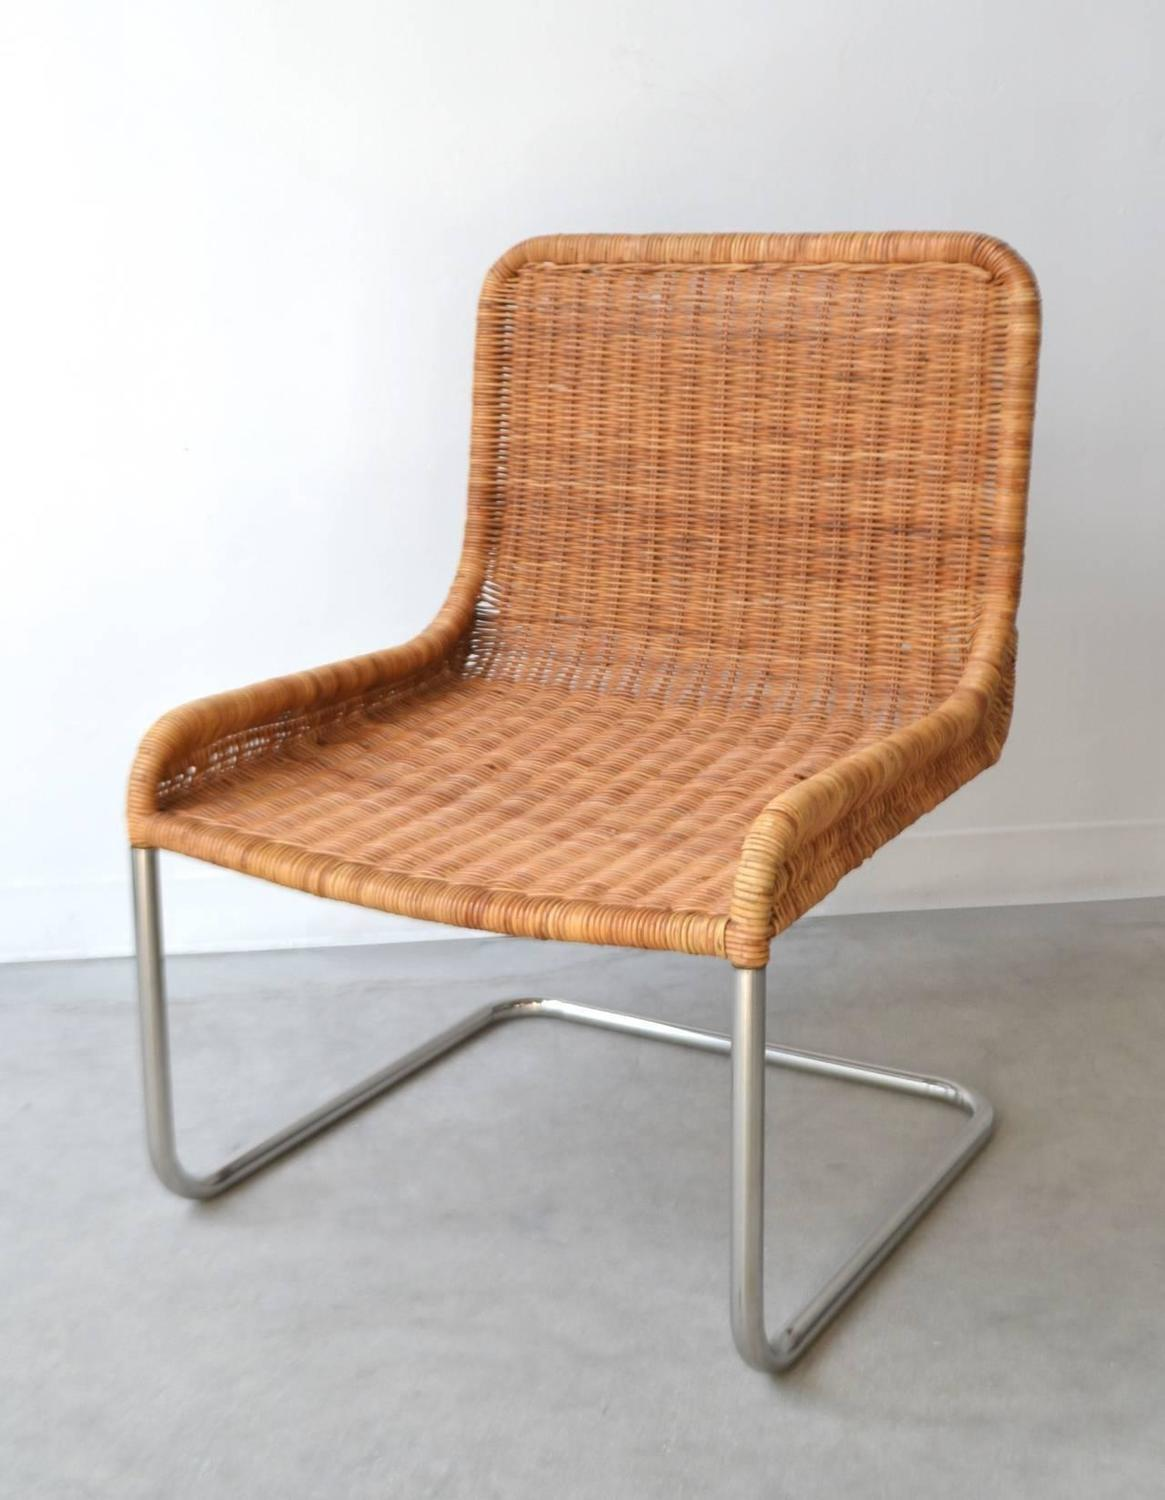 Leather Woven Chair Mid Century Woven Rattan And Leather Occasional Chair For